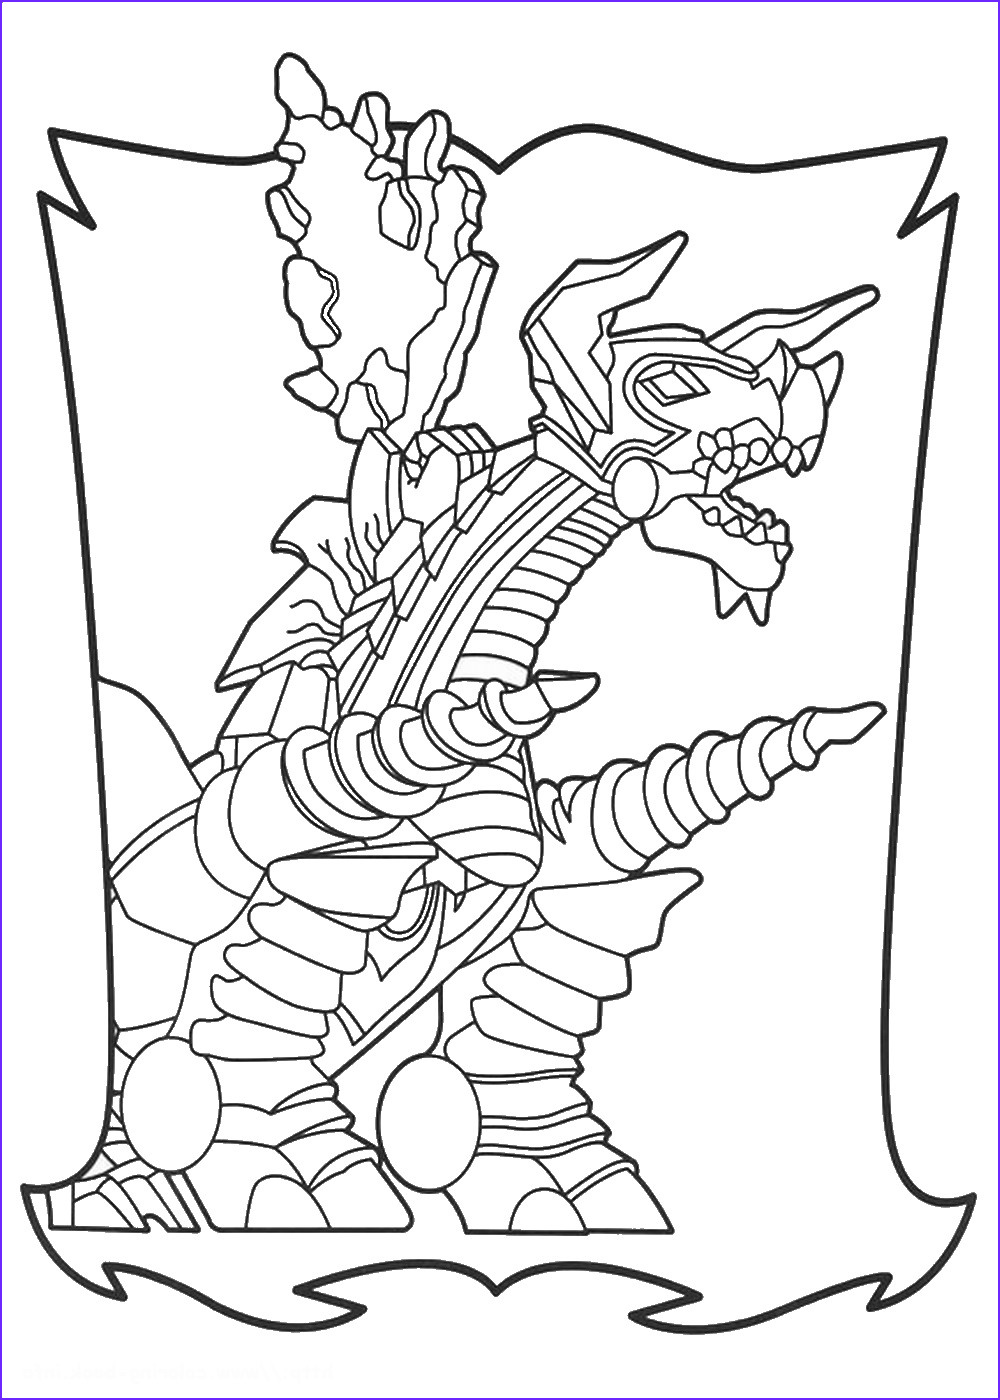 Coloring Page Of Power Rangers Luxury Images Power Rangers Coloring Pages